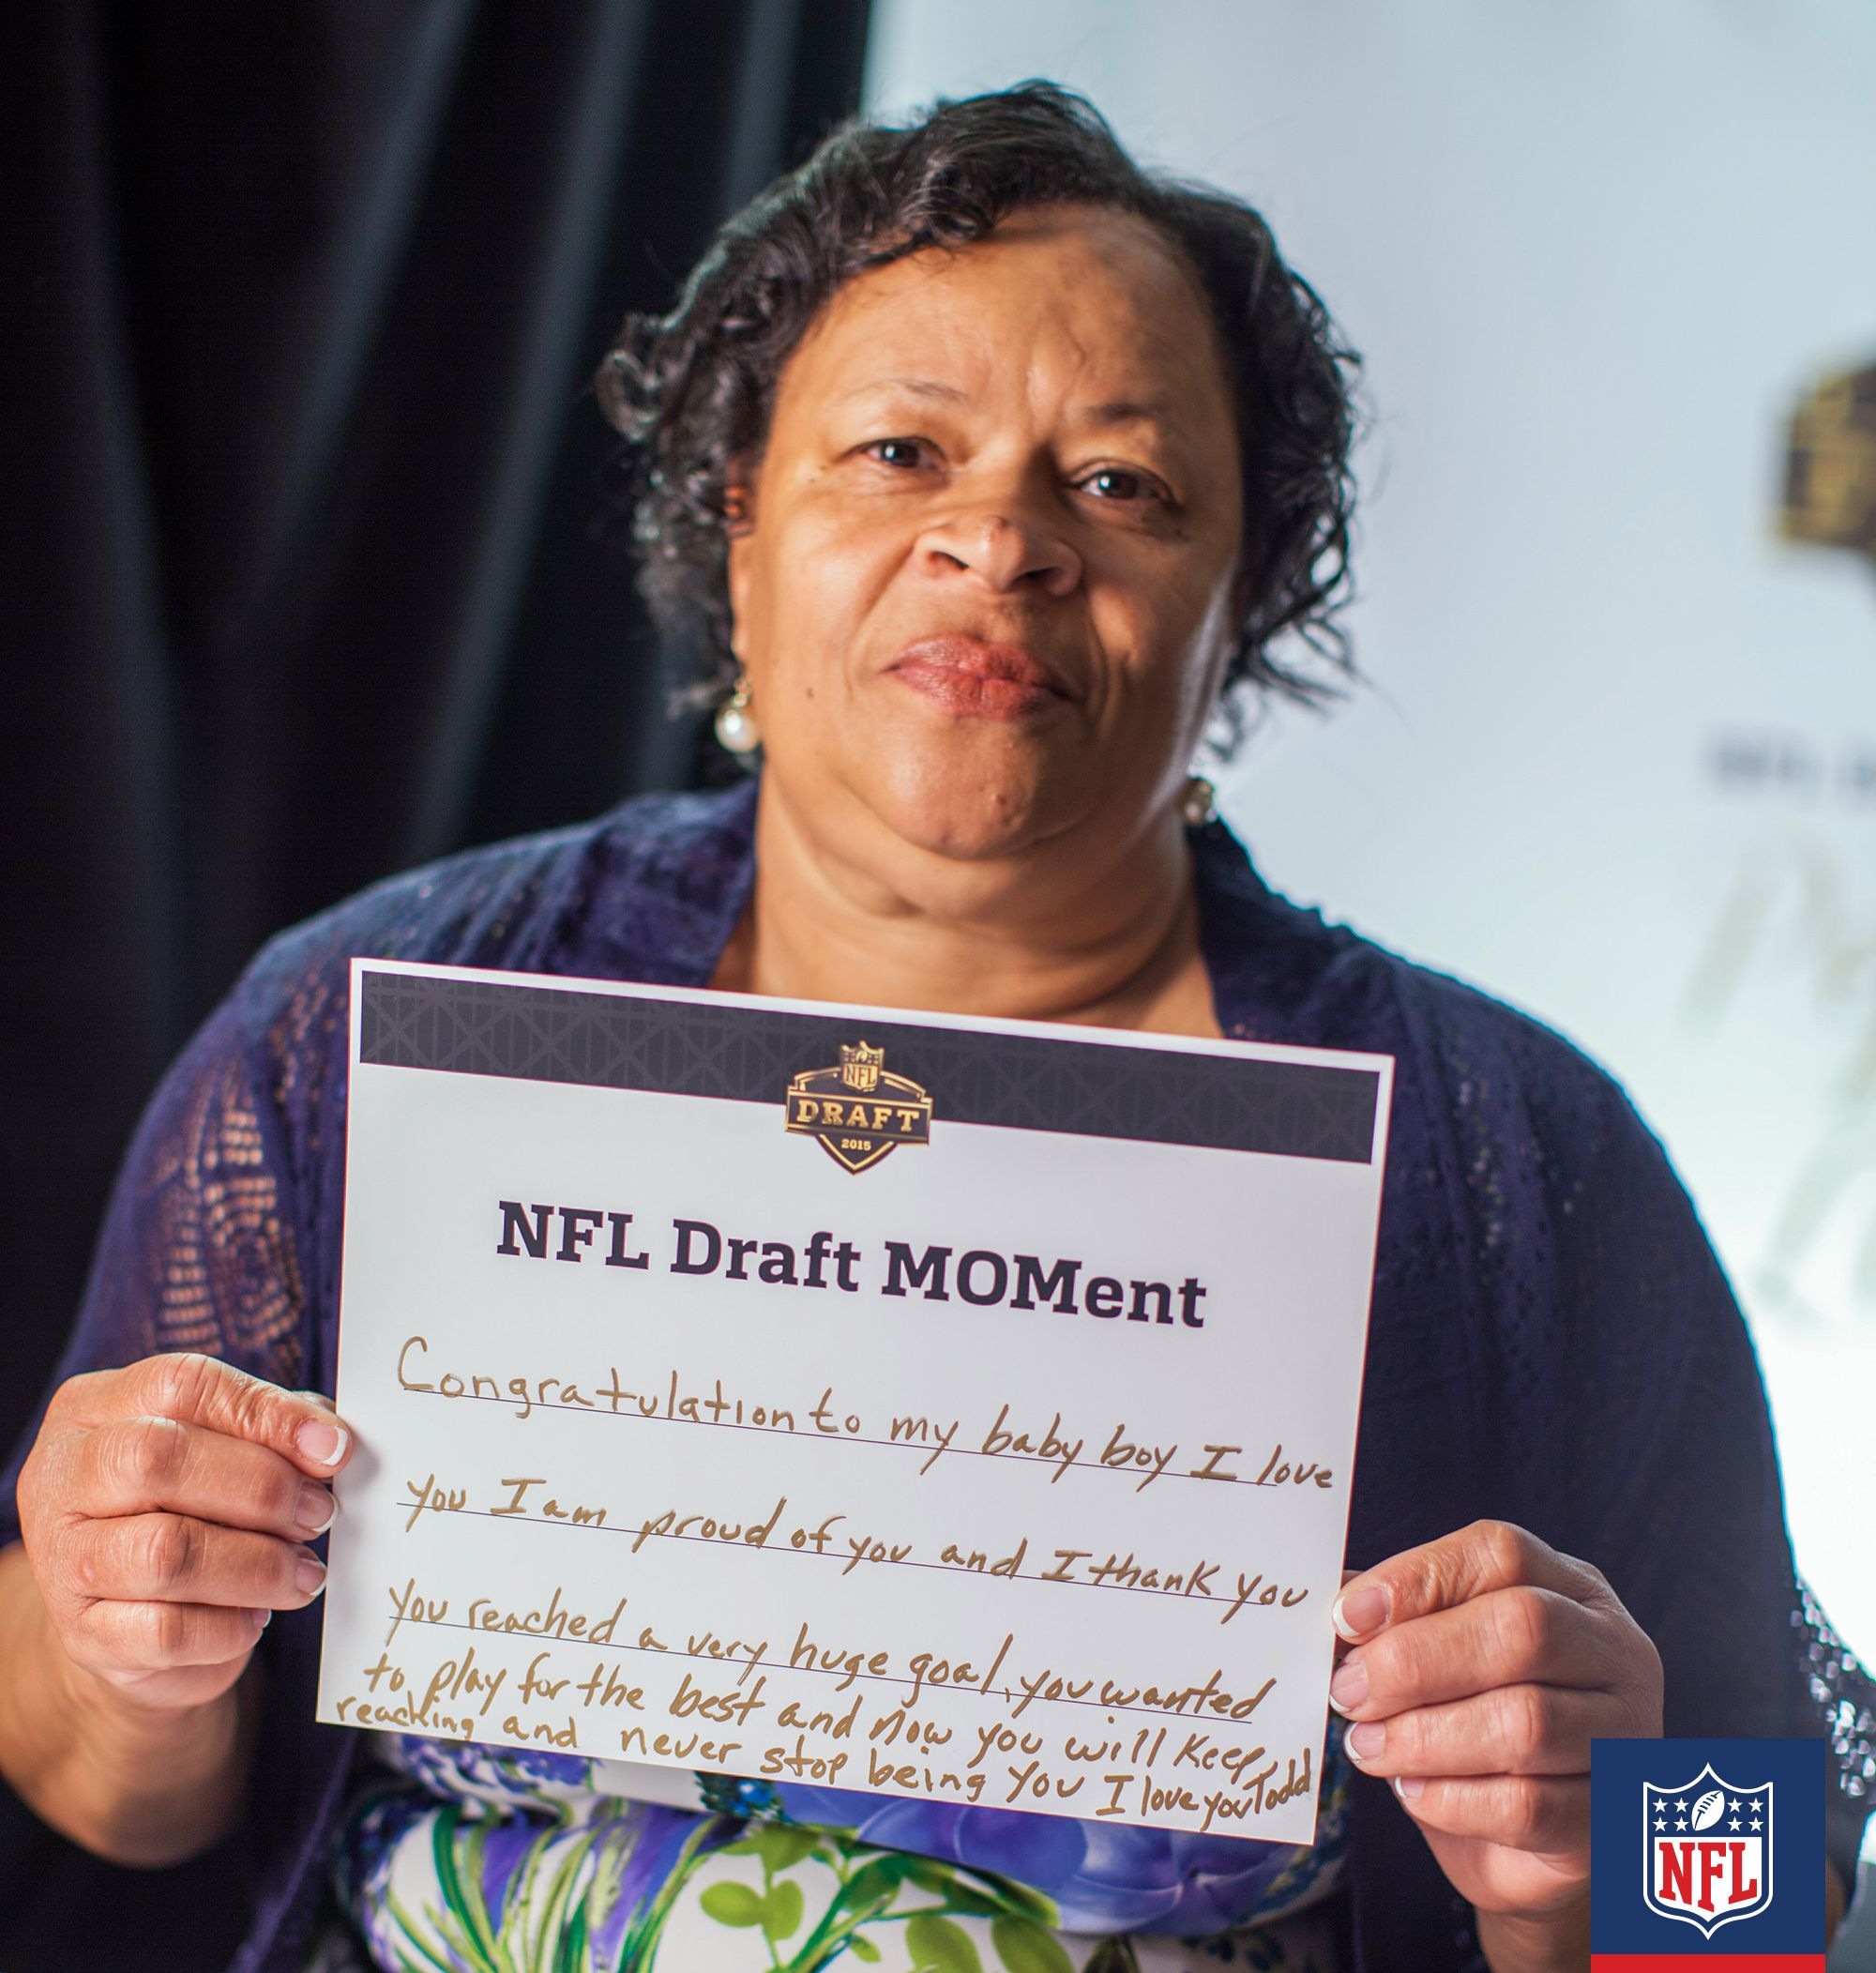 New St Louis Rams Rb Todd Gurley Can Focus On Making The City Of St Louis Proud As It S Clear Mama Darlene Is Alr Nfl Players Pep Talks Nfl Football Players